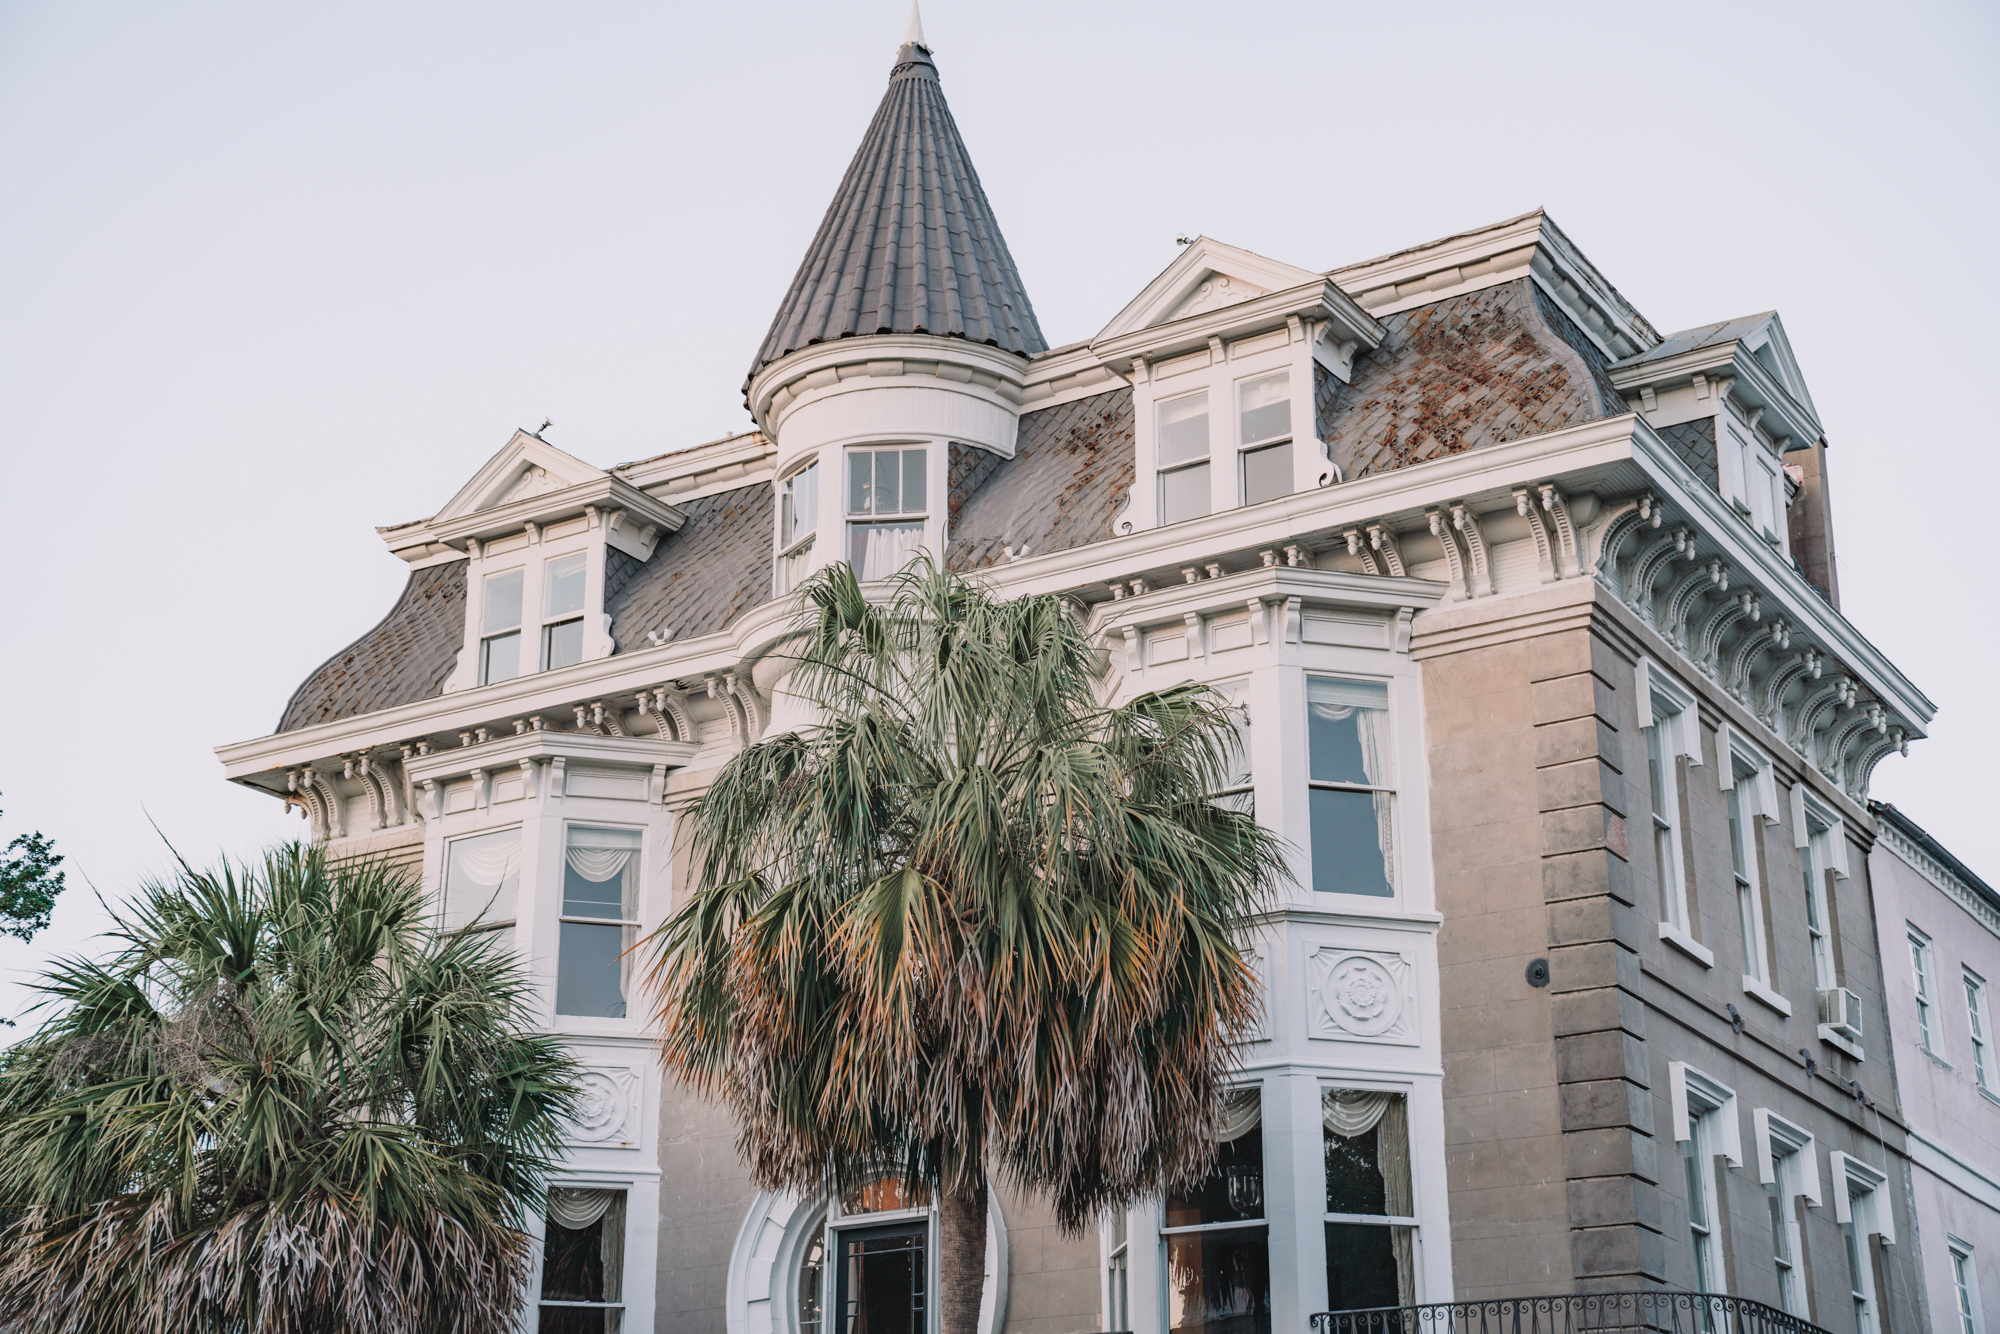 charleston sc visitors guide - a giant antebellum house with palmetto trees in front.